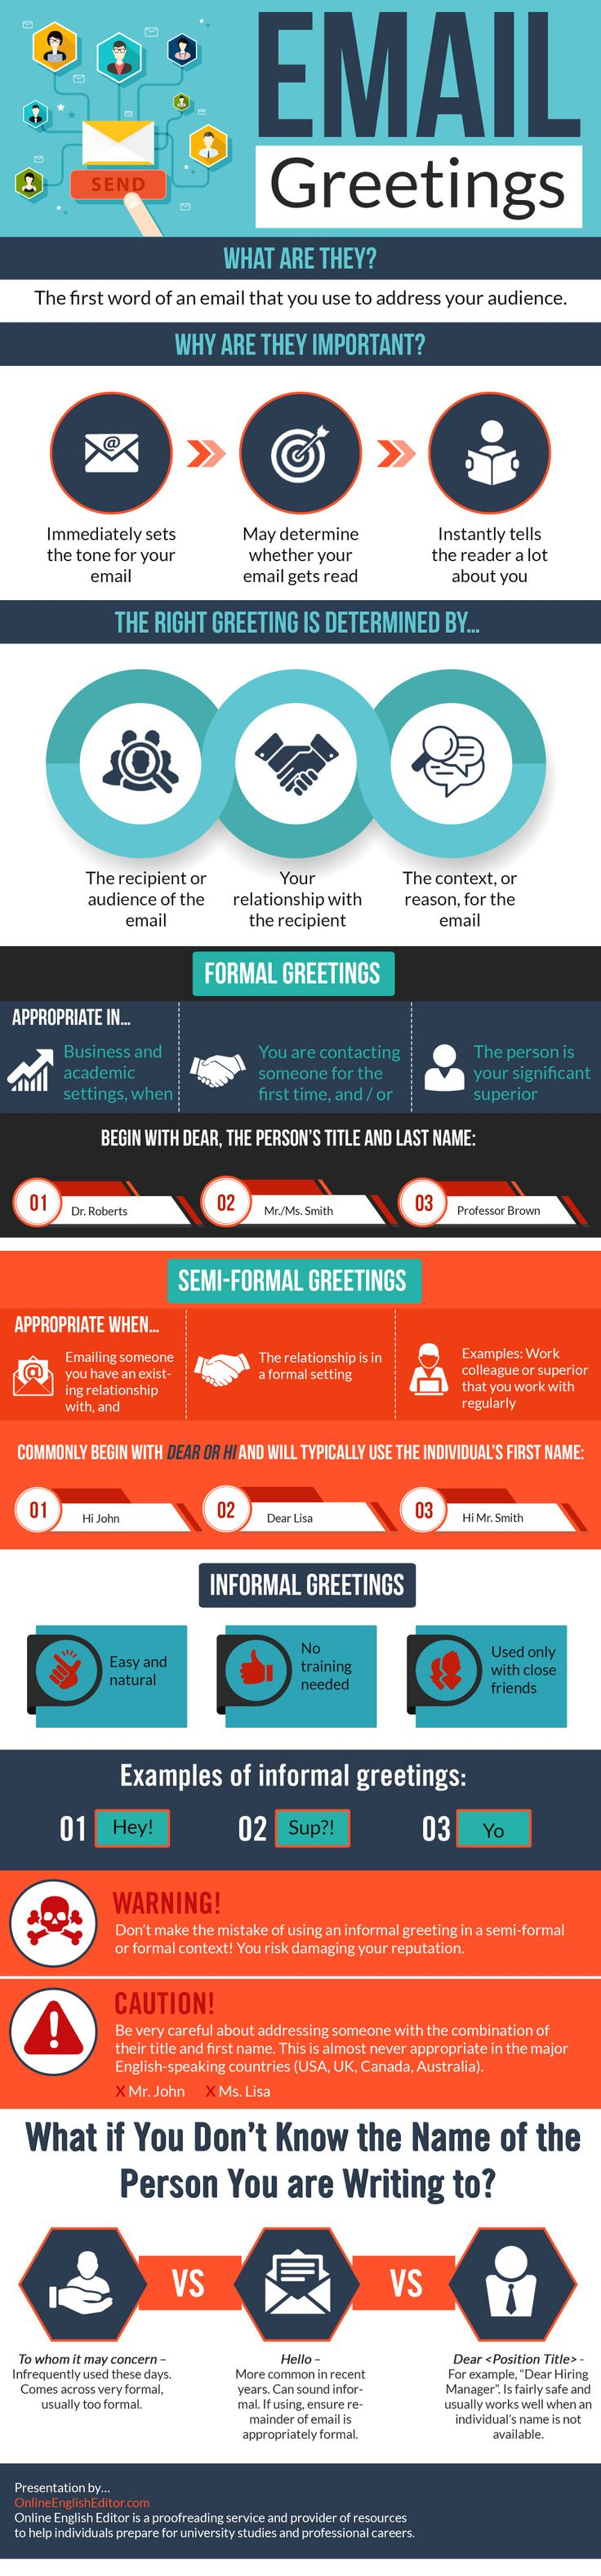 An email greeting is the first word(s) of an email used to address your audience. Email greetings are critical because they set the tone for your email and immediately tell the reader a lot about you. In this infographic, Online English Editor looks at different types of email greetings and how to choose the right one for your audience.